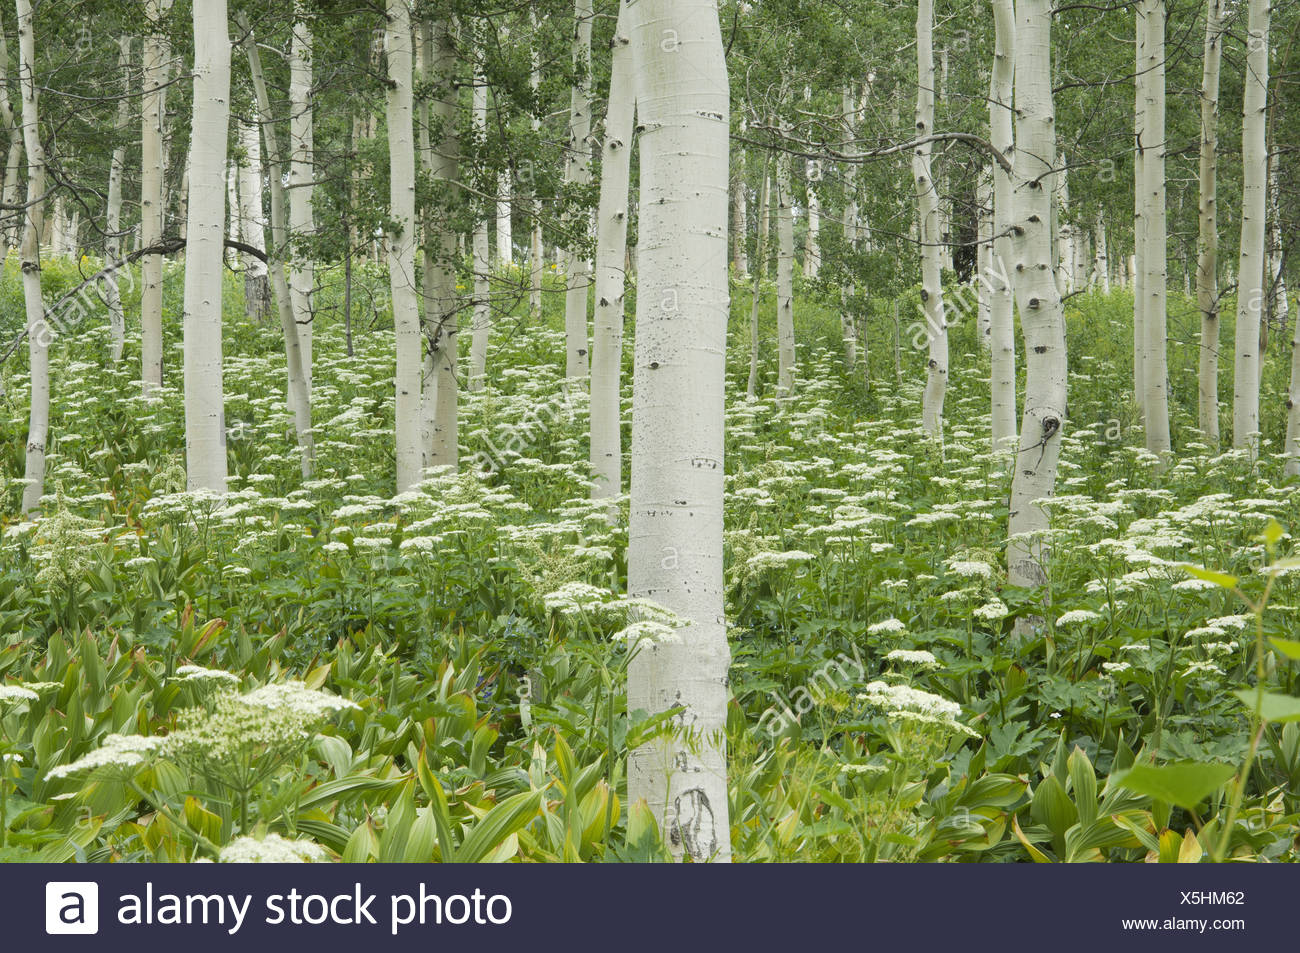 Grove of aspen trees with white bark and wild flowers growing in their shade - Stock Image